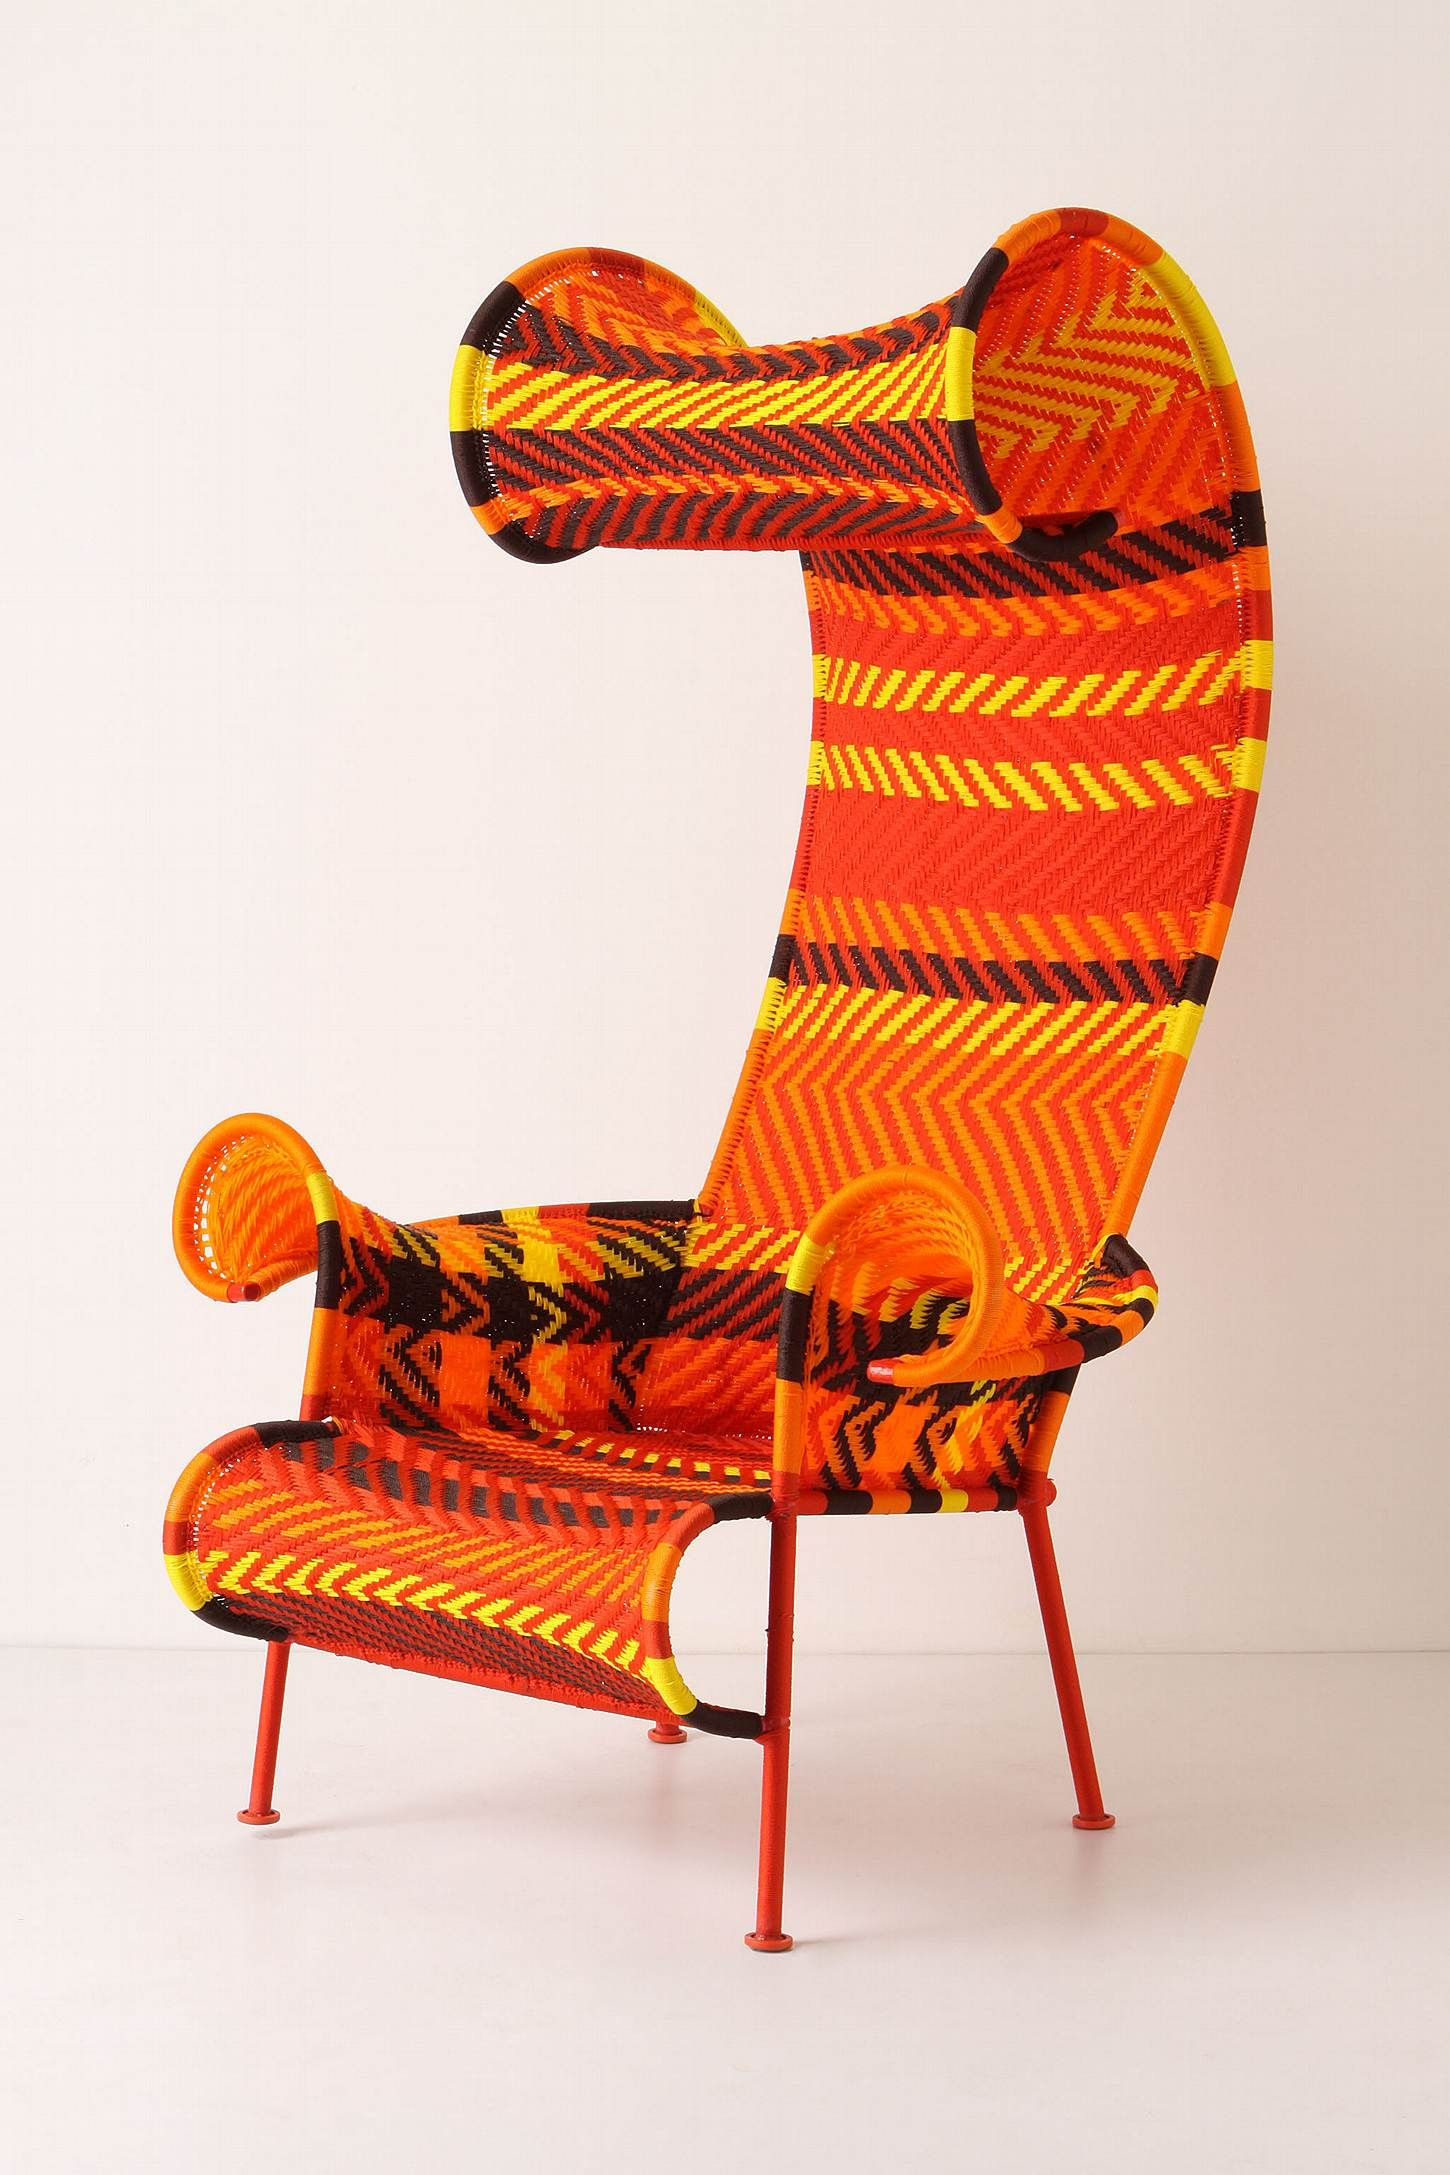 Outdoor Reading Chair Chair By Tord Boontje Or Quotchair From A Dr Seuss Book